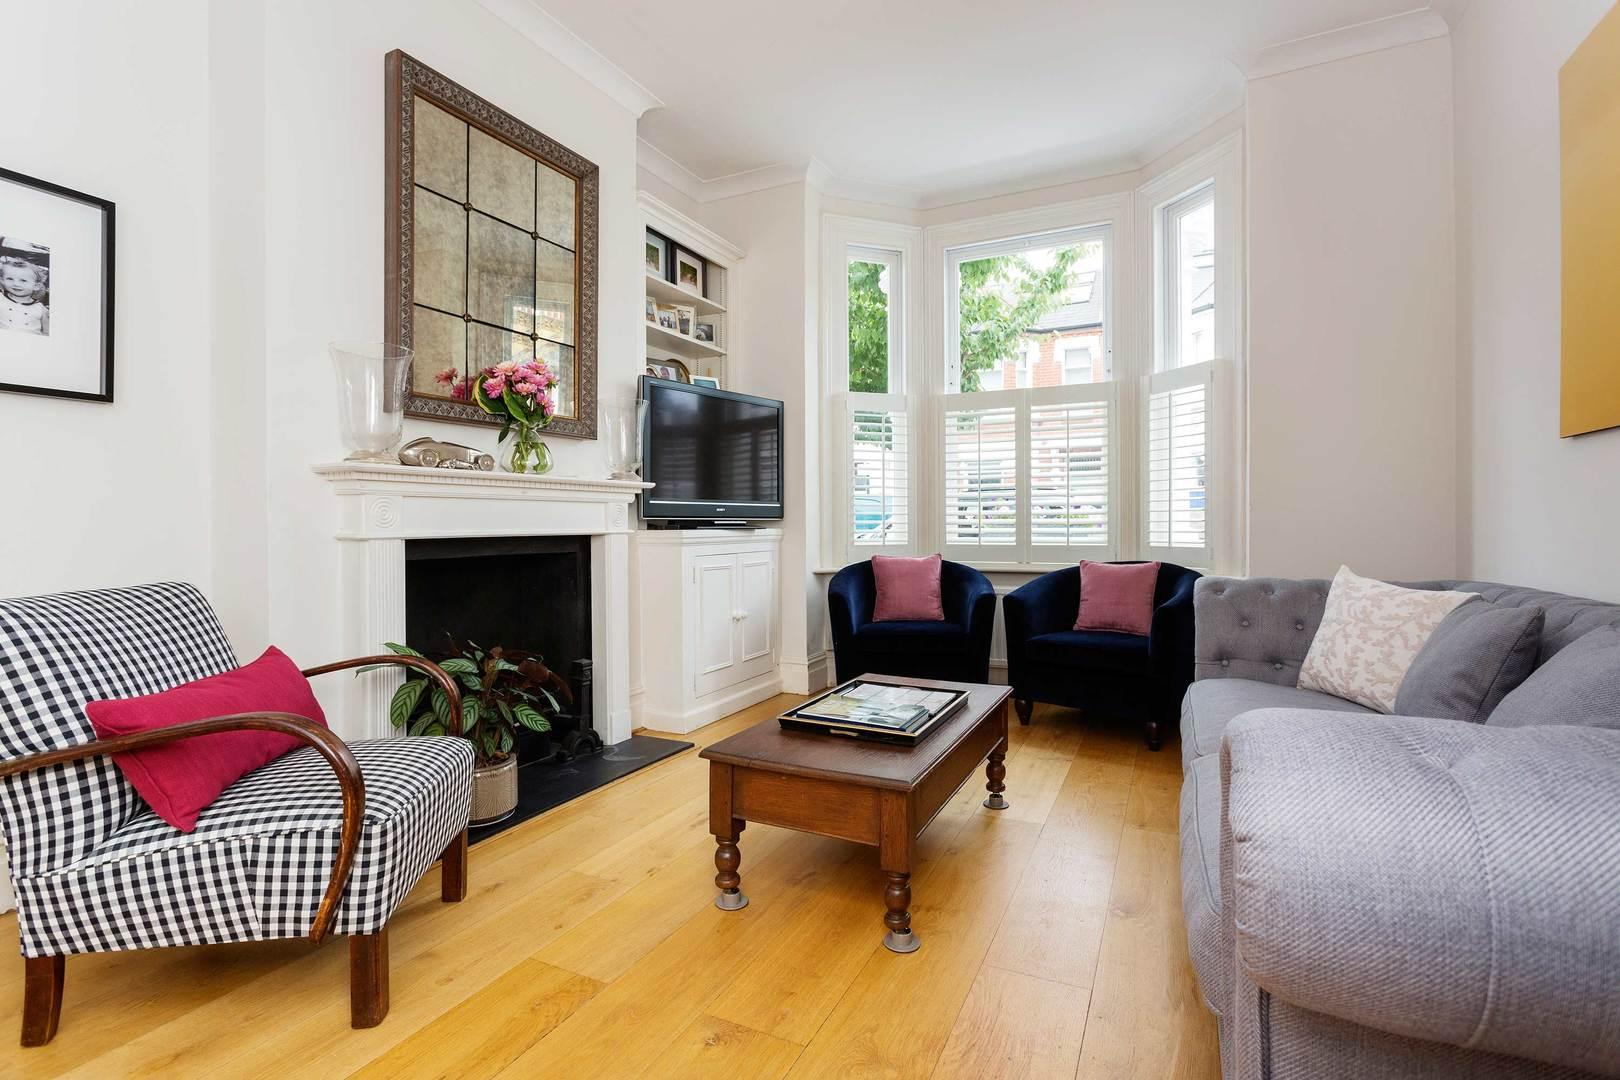 Property Image 1 - Stylish Peaceful Family House in Wandsworth Area